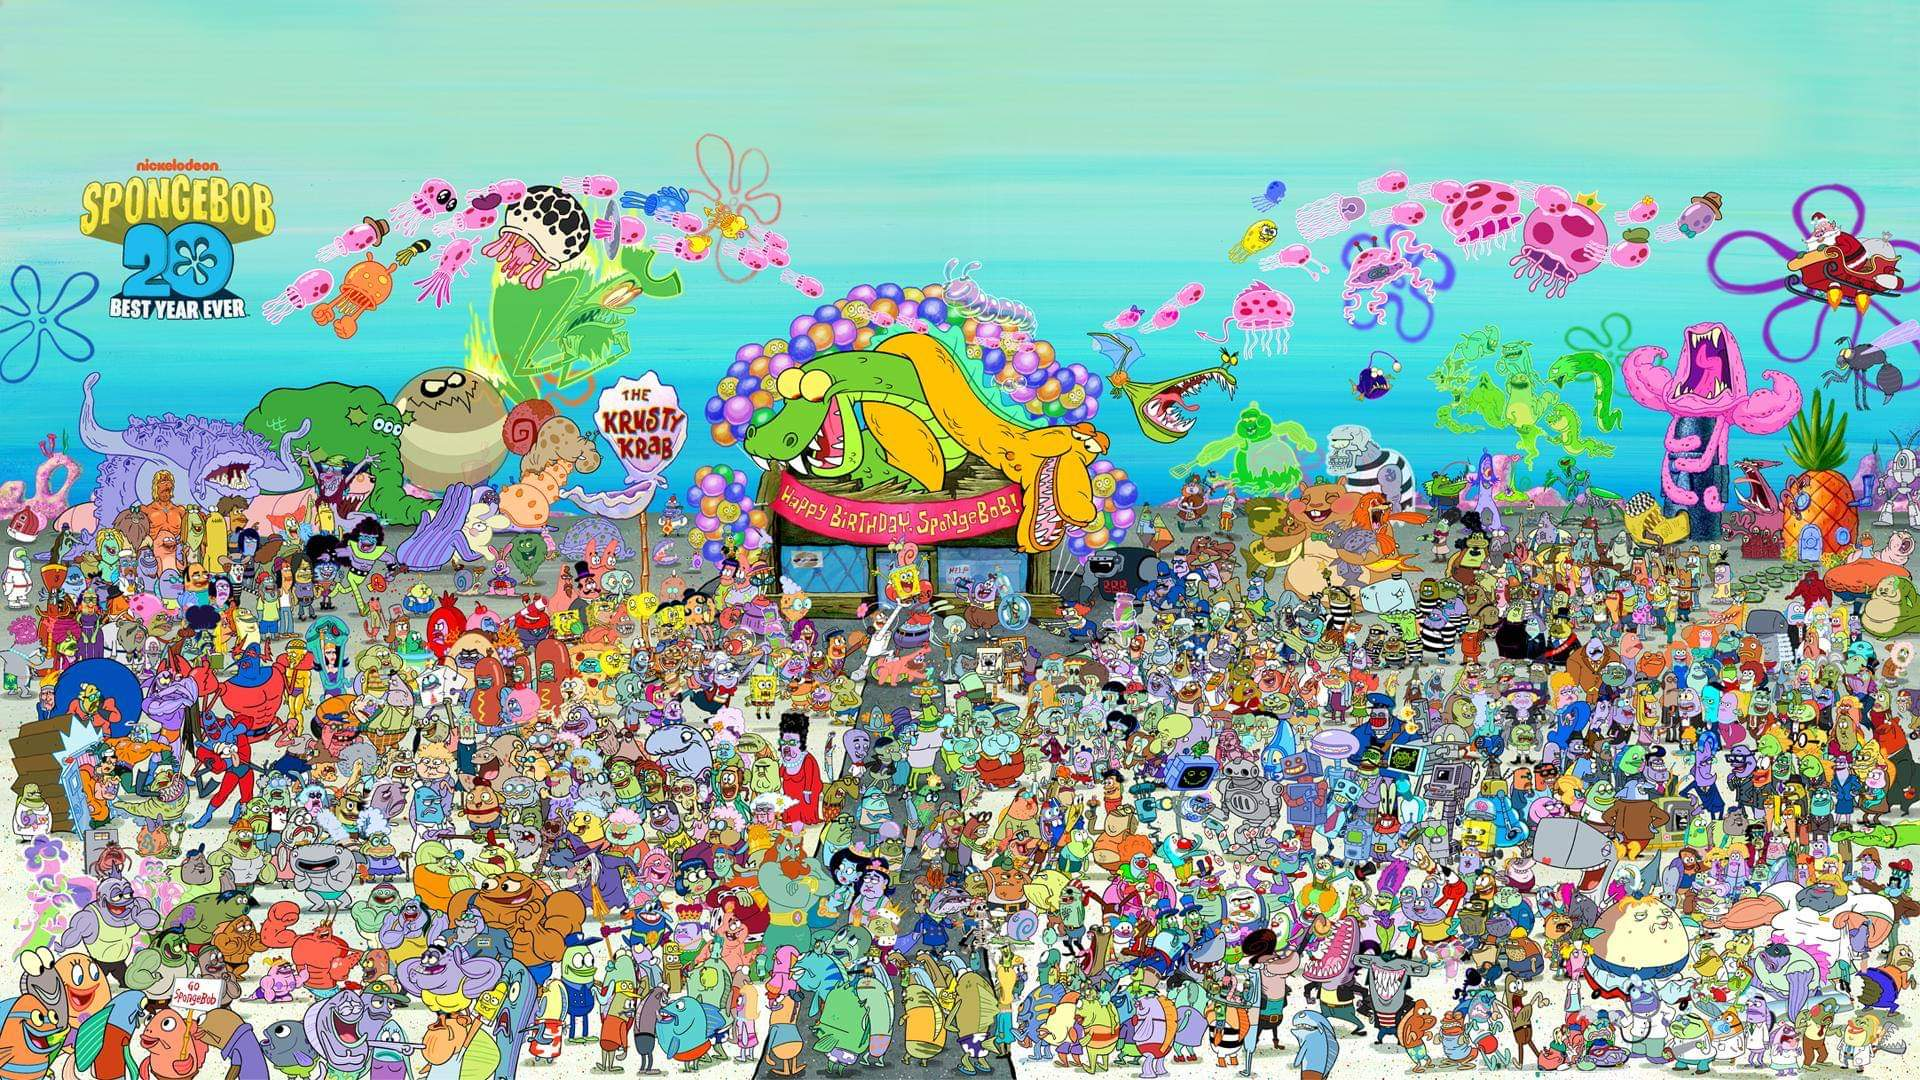 'Spongebob Squarepants' 20th Anniversary Poster